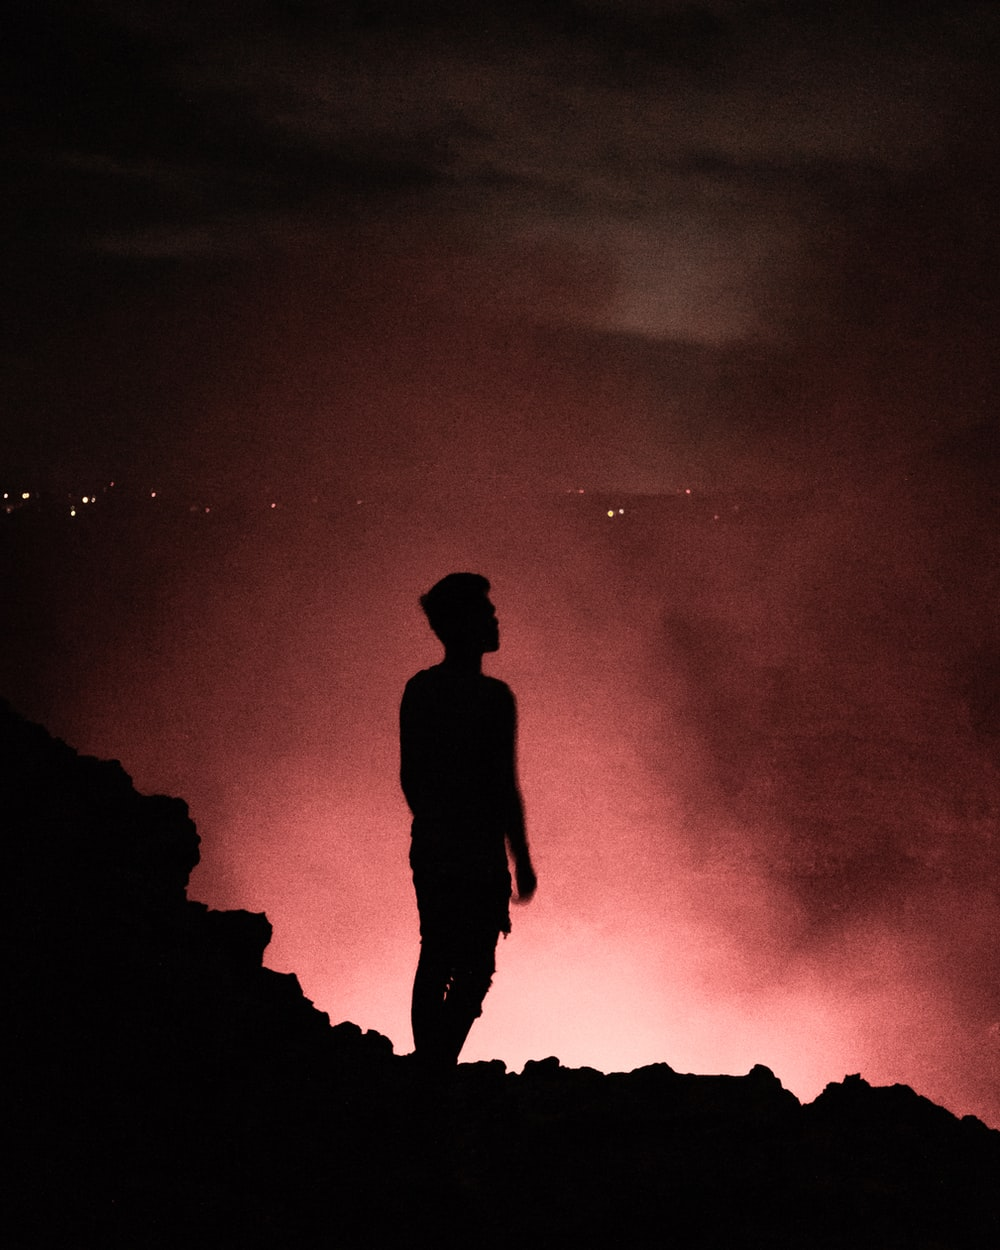 silhouette of man during nighttime